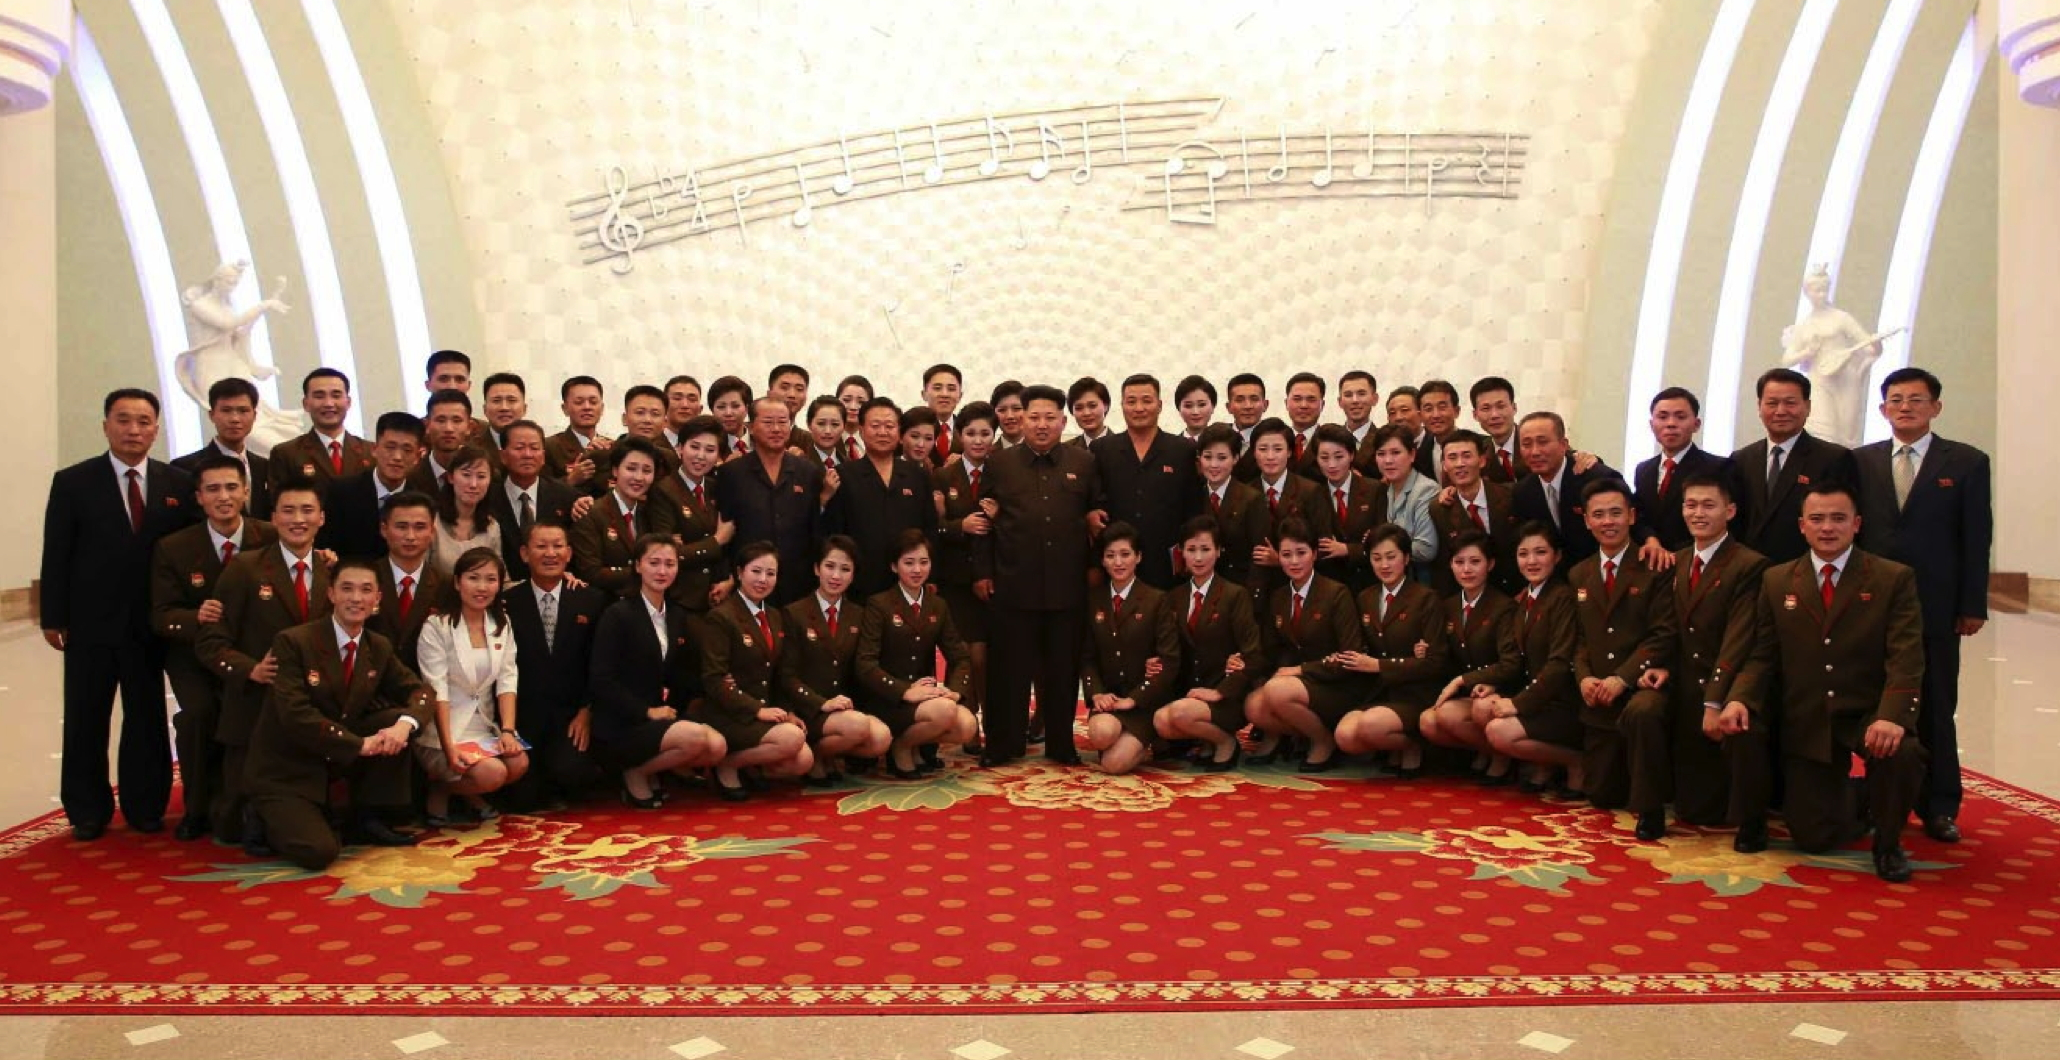 Kim Jong Un poses for a commemorative photo with members of the Kim Il Sung Socialist Youth League Art Propaganda Squad following the concert (Photo: Rodong Sinmun).